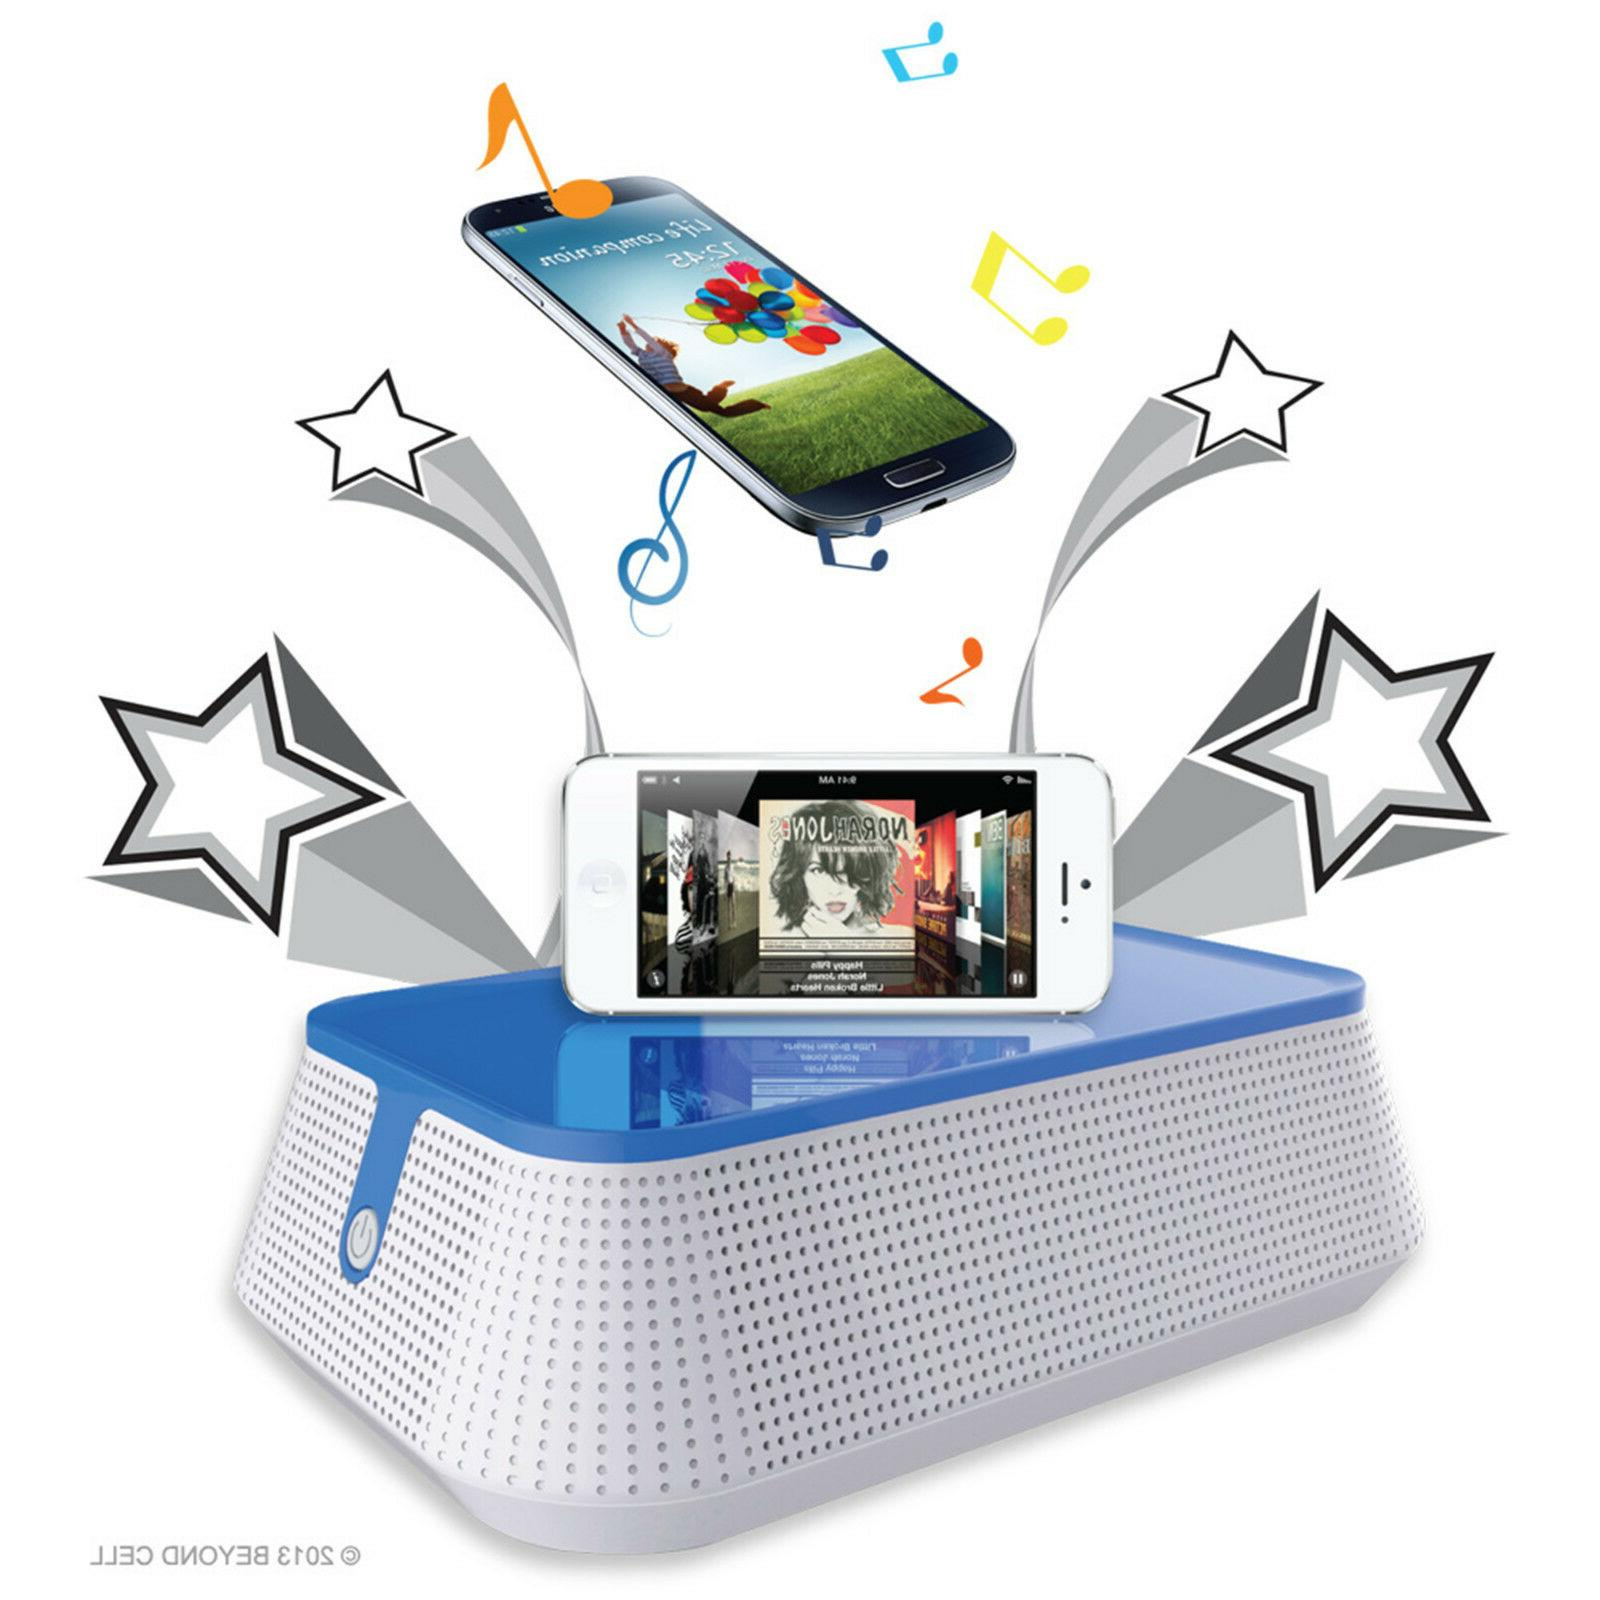 Portable Speaker for Mobile phones - IOS or Android system -